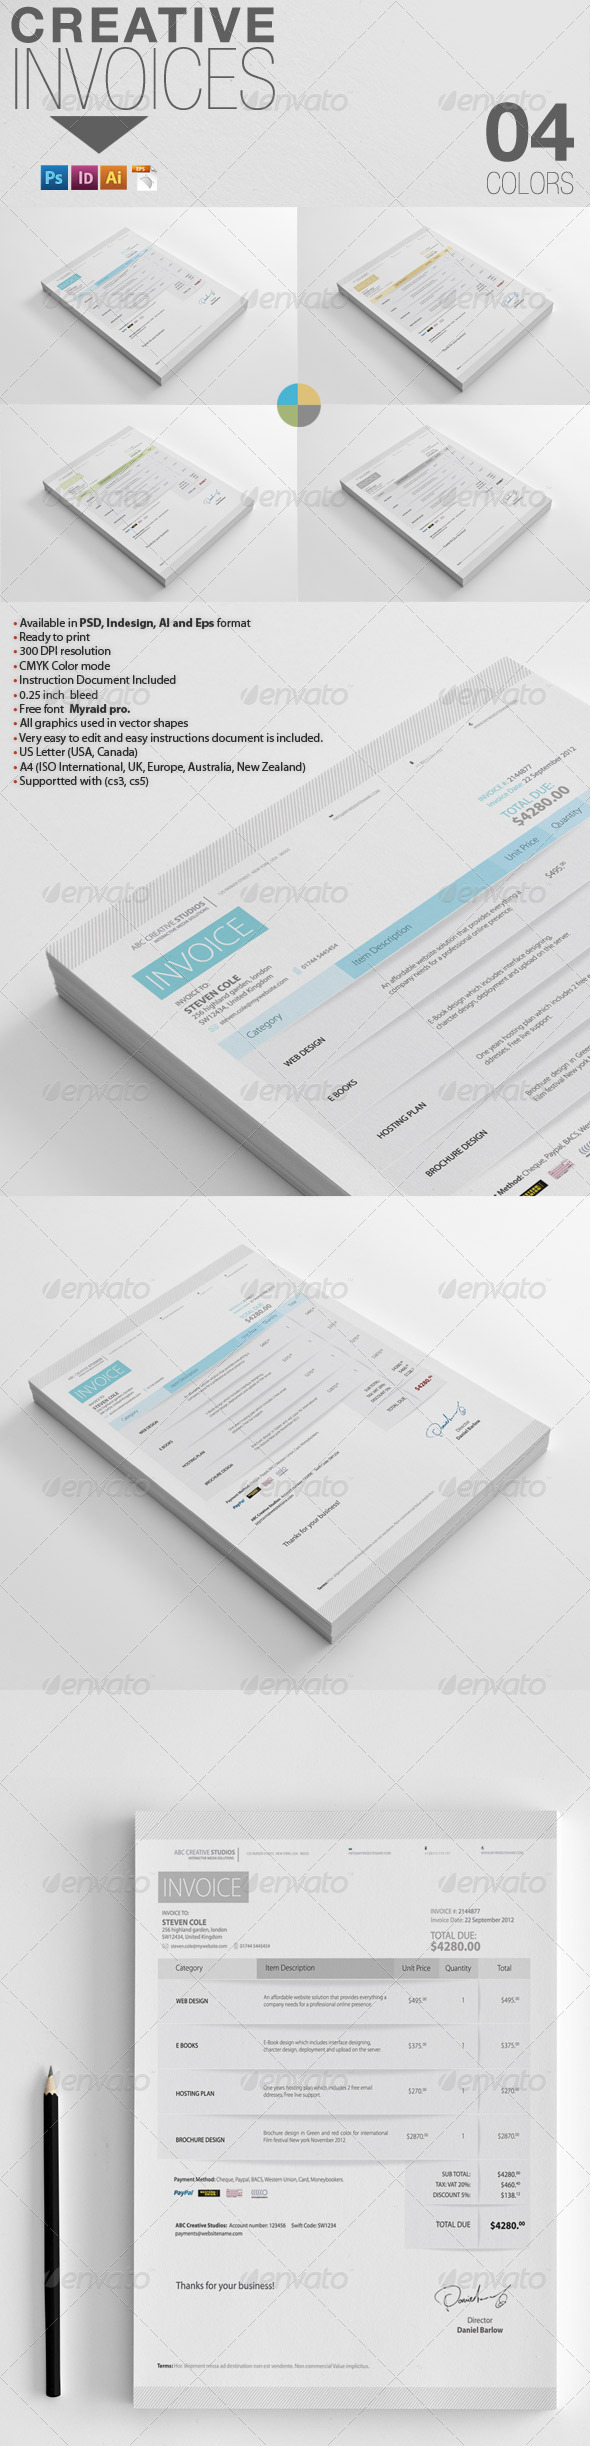 Creative Invoices - Proposals & Invoices Stationery